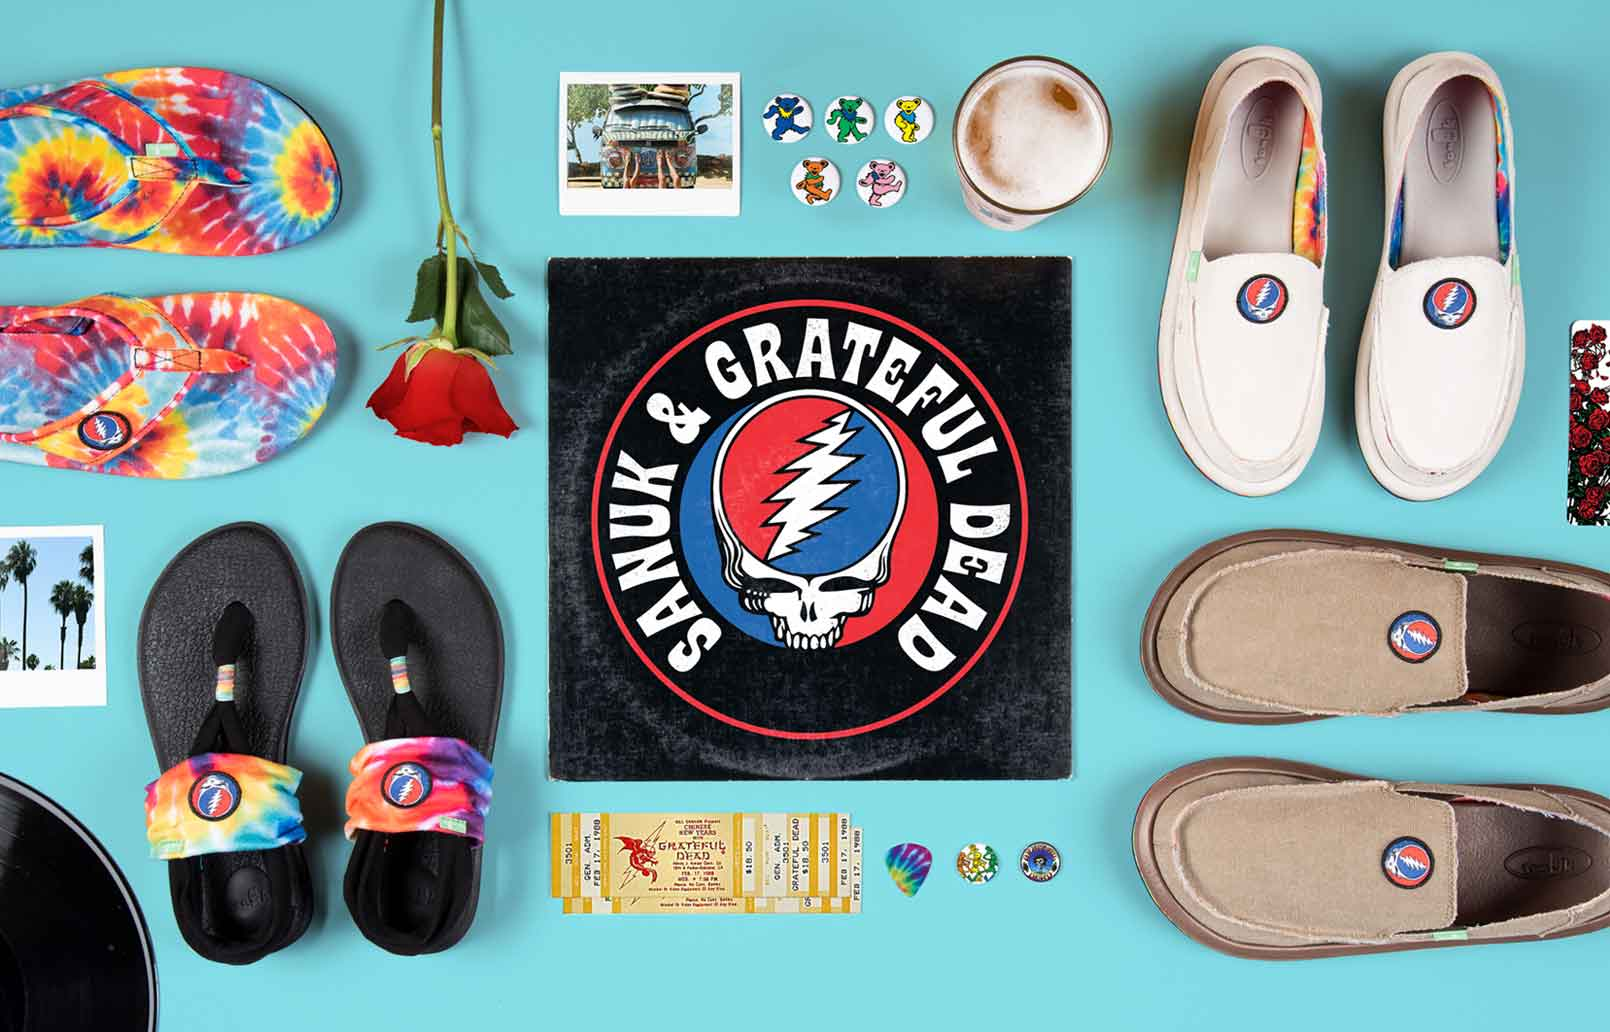 ad4dbf929d3 Grateful dead items on a blue background